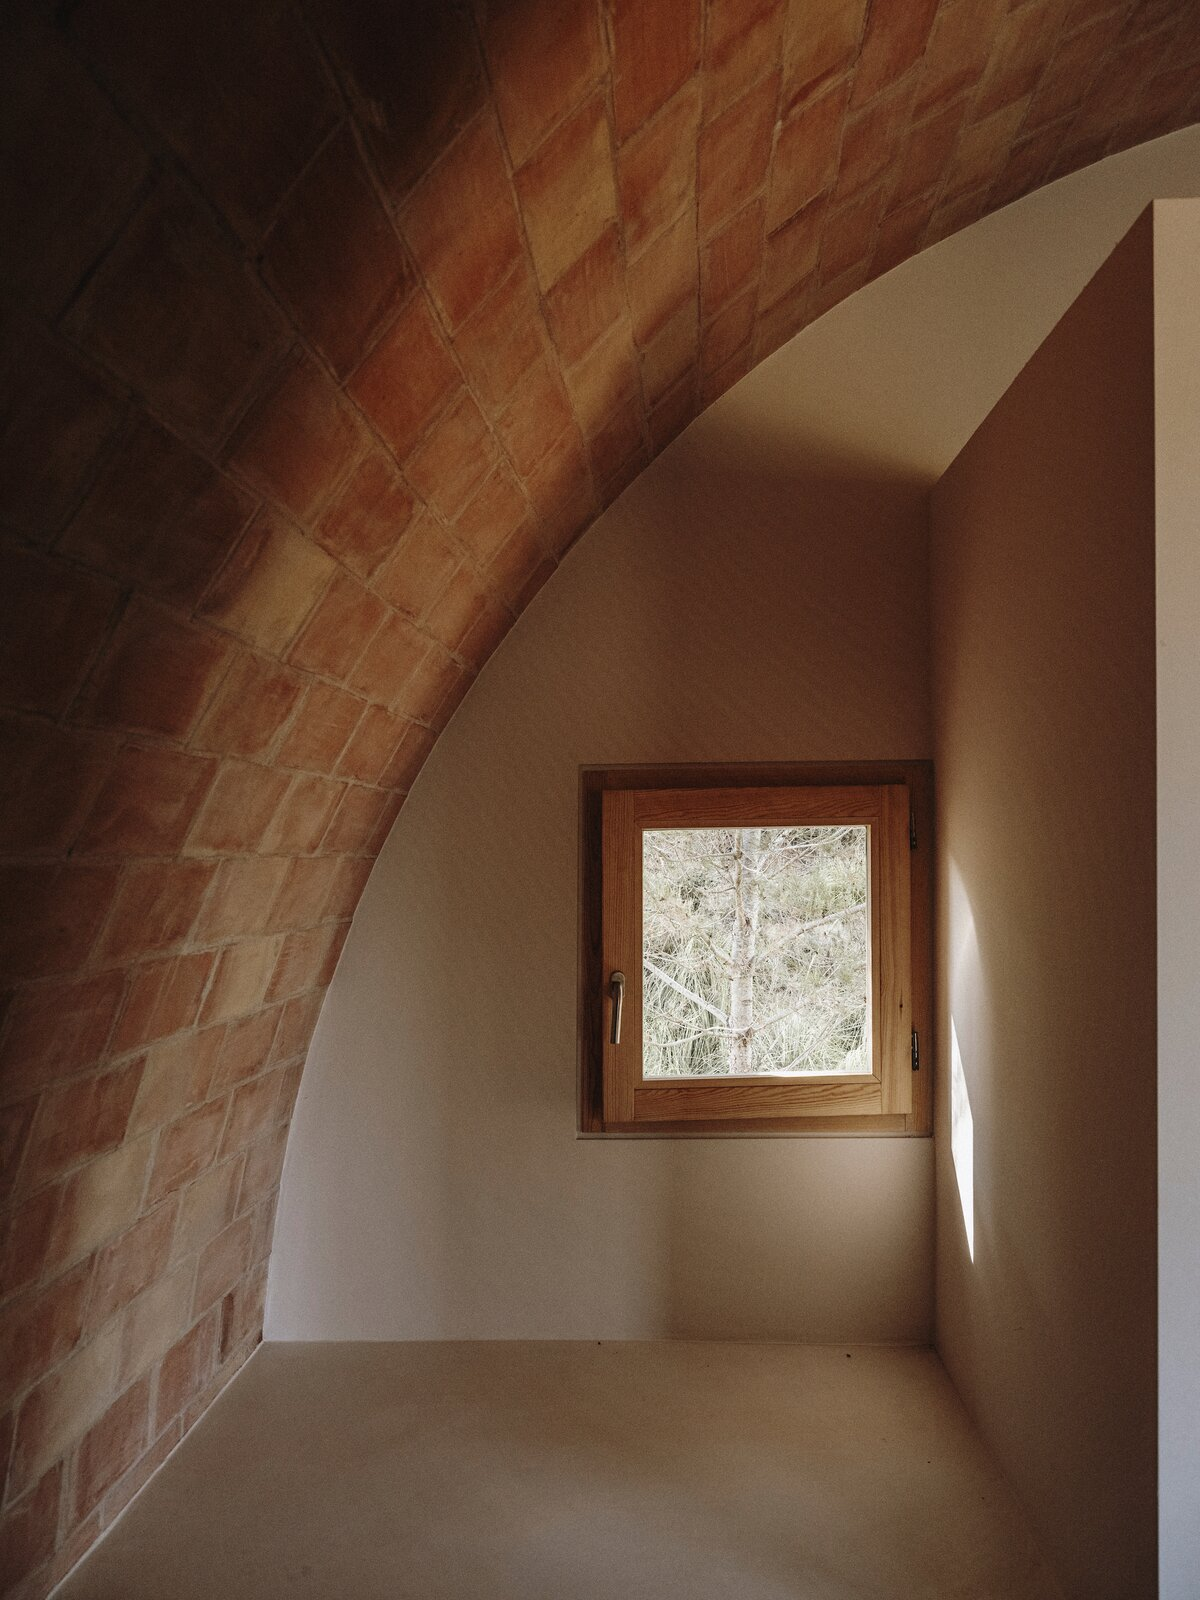 Vaulted ceiling of Casa Ter by Mesura.